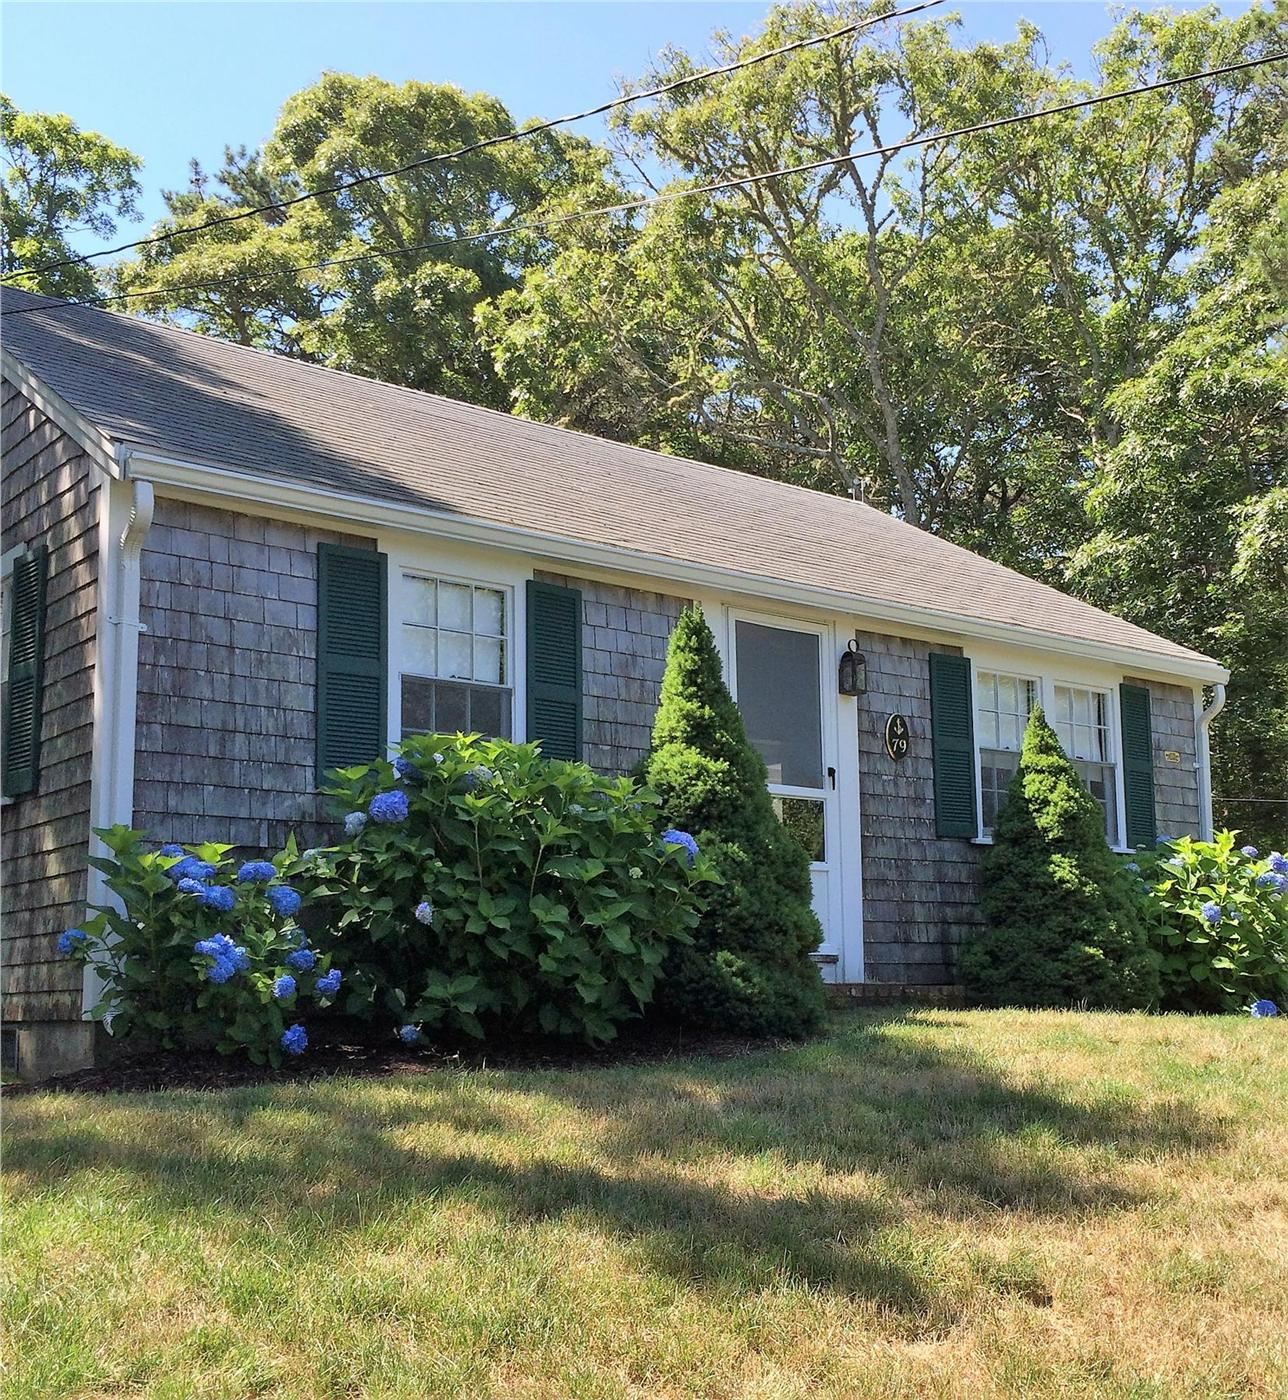 Chatham Vacation Rental Home In Cape Cod MA 02699, 6/10 Mi